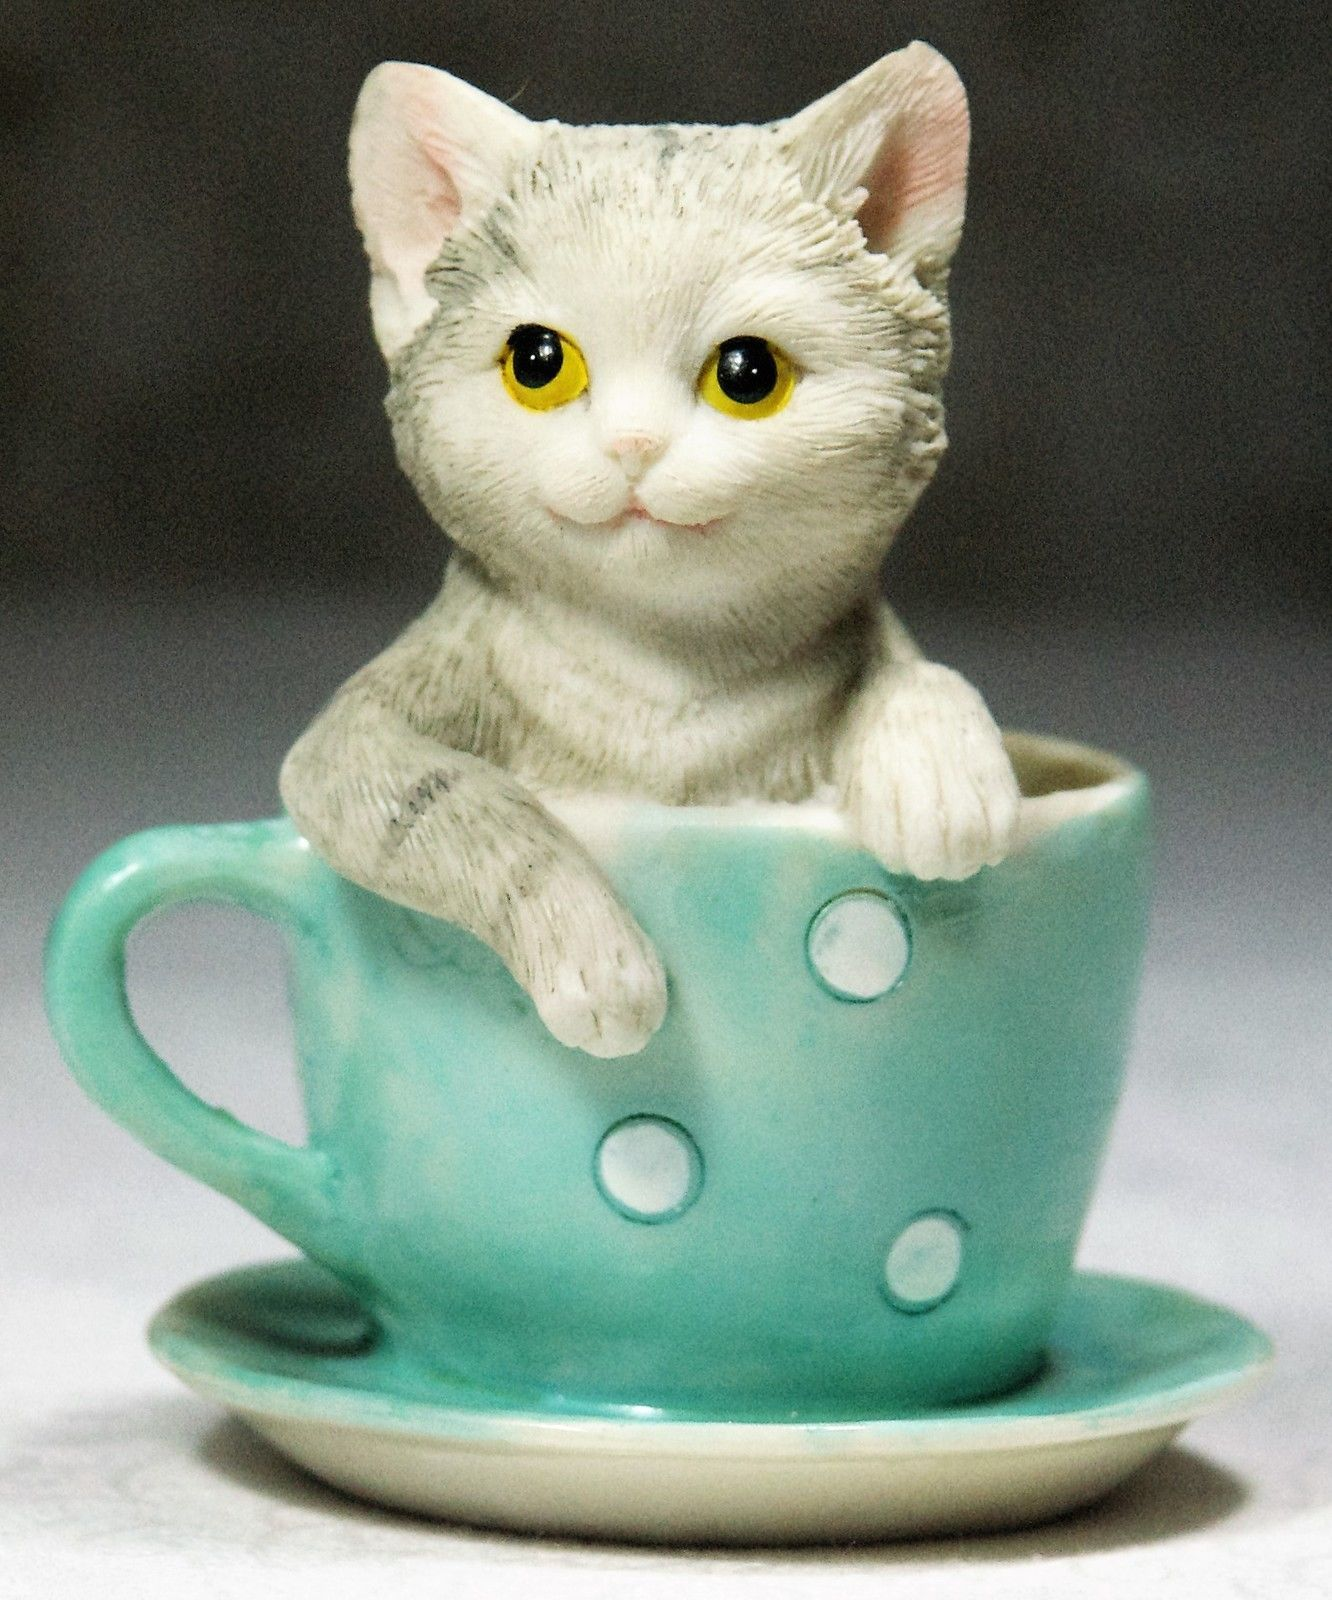 A cute Grey Tabby Kitten in an Aqua Tea Cup & Saucer